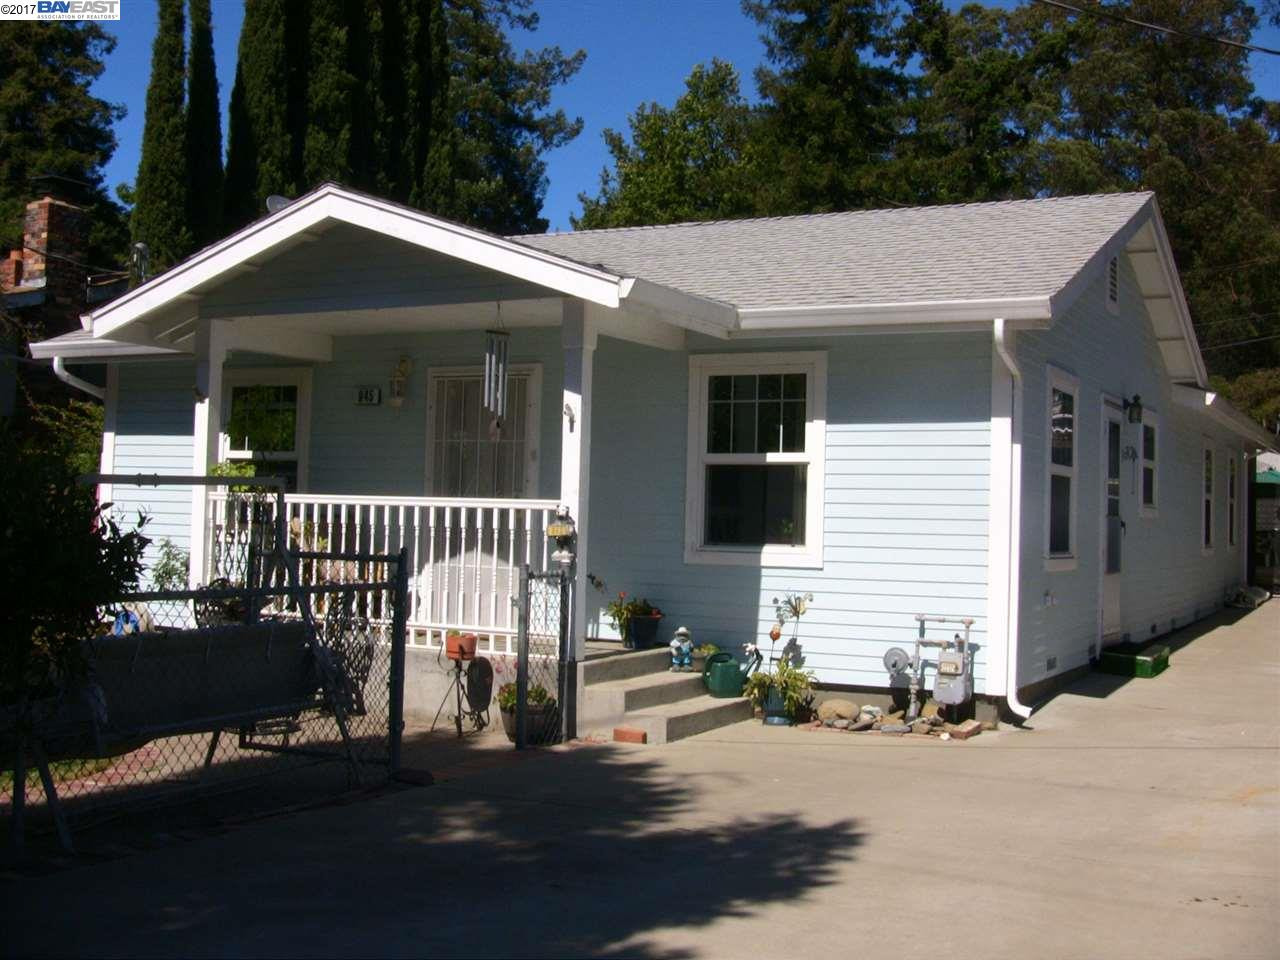 945 Old Canyon Rd, FREMONT, CA 94536